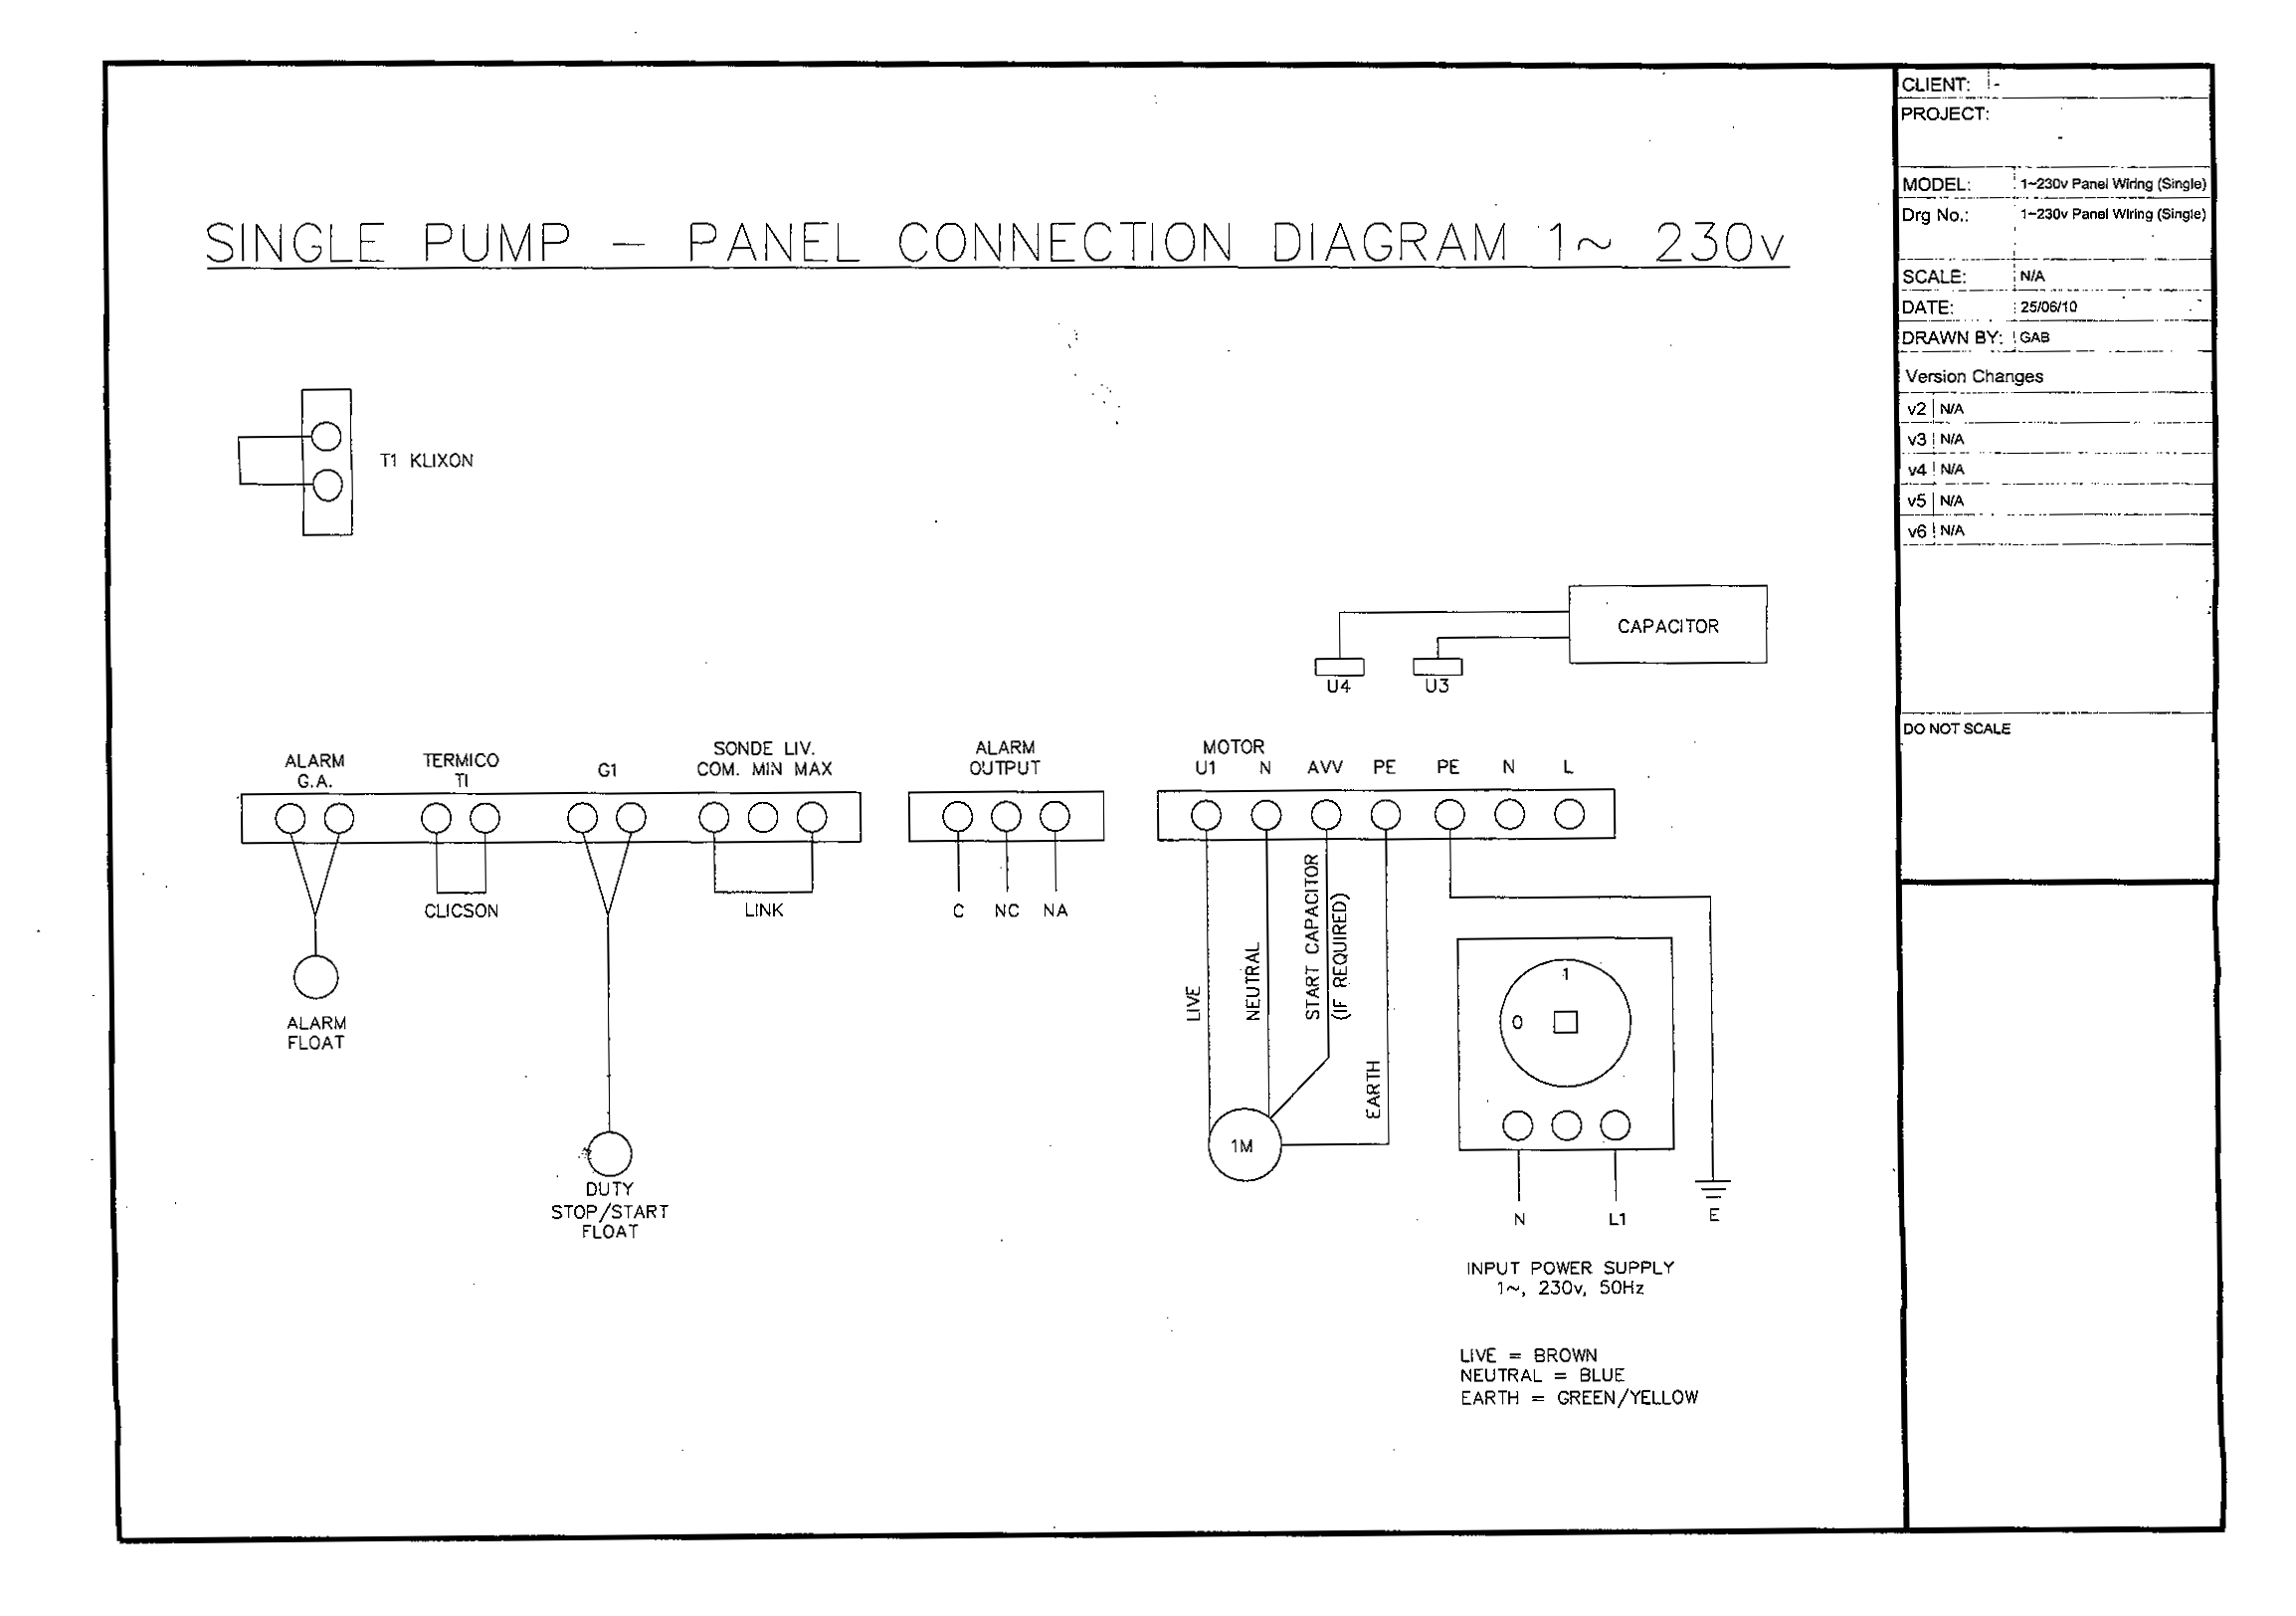 Simplex Wiring Diagram Float on orenco duplex control panel wiring diagram